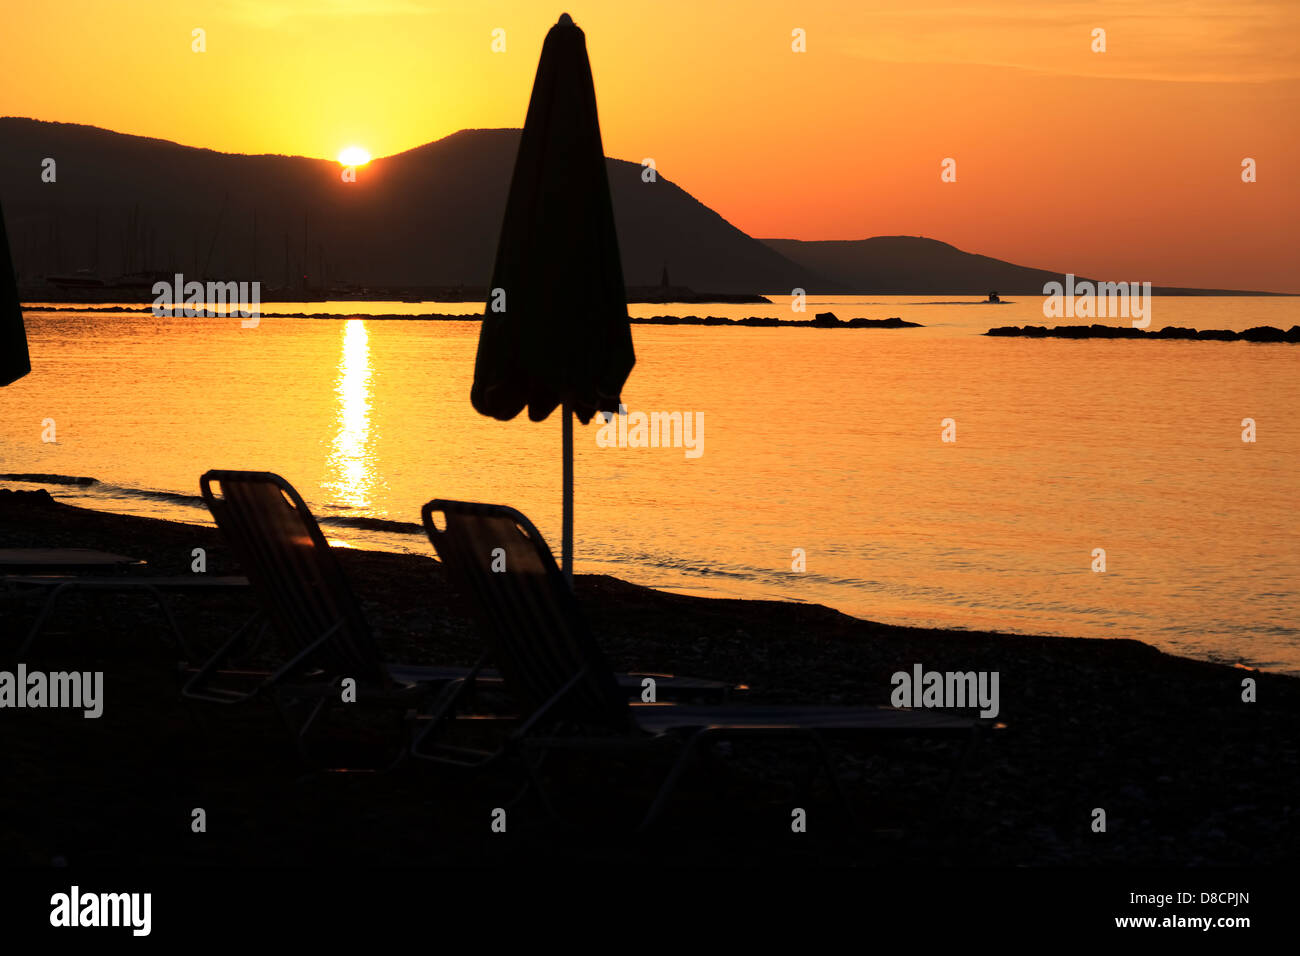 Golden sunset over the hills of Akamas peninsula as seen from Latchi beach, Paphos area, Cyprus - Stock Image